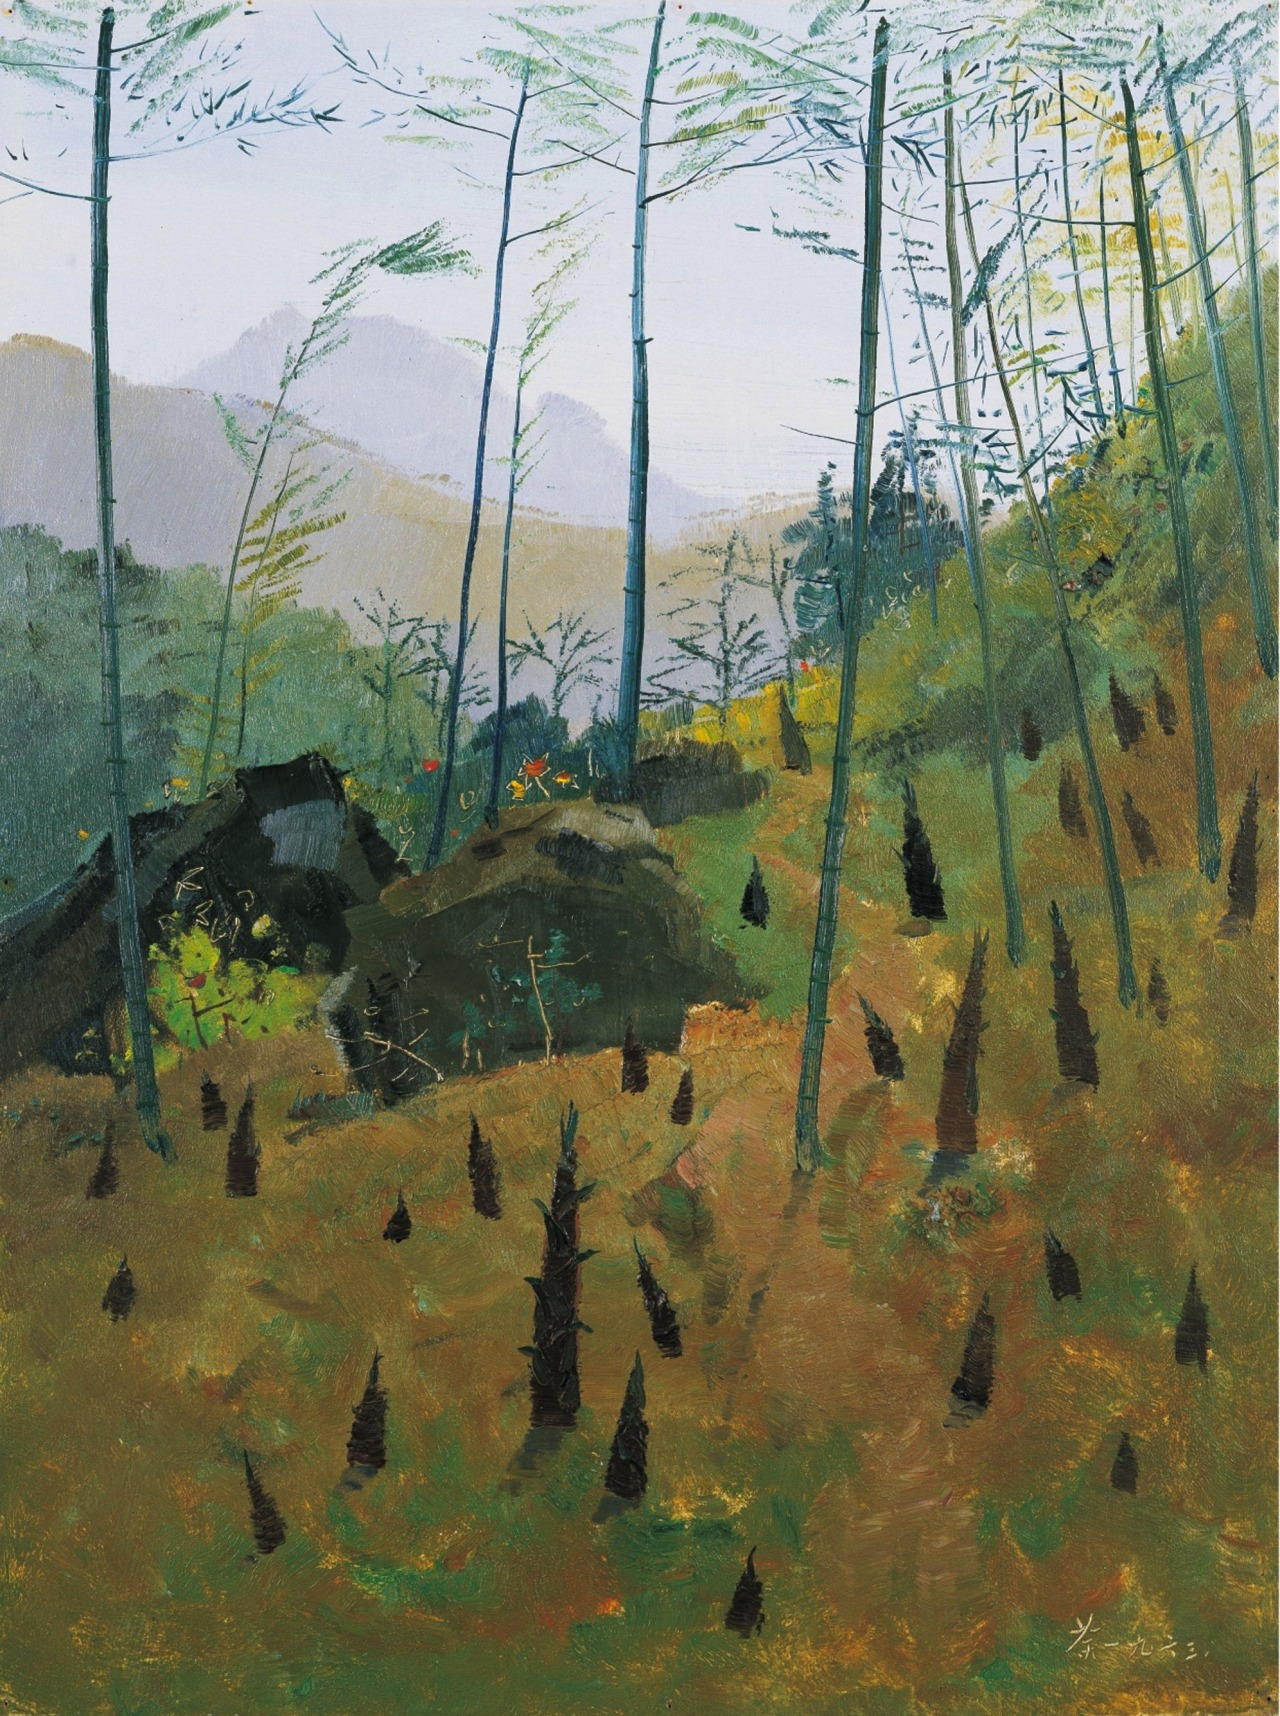 """thunderstruck9: """" Wu Guanzhong (Chinese, 1919-2010), Spring bamboo shoots, 1963. Oil on board, 61.3 x 46 cm """""""